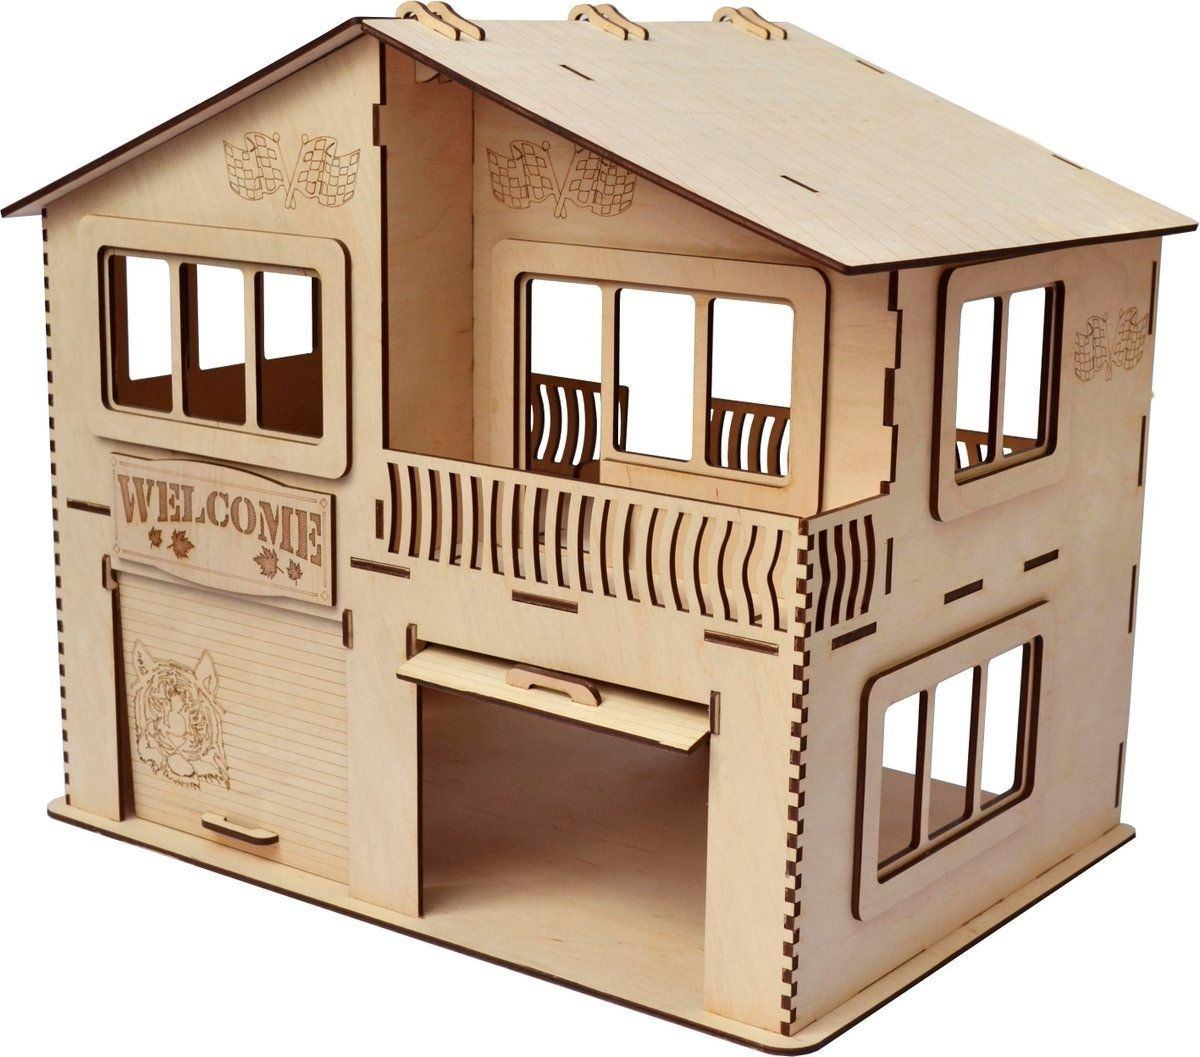 CNC LASER CUT DXF FILES 6 houses files